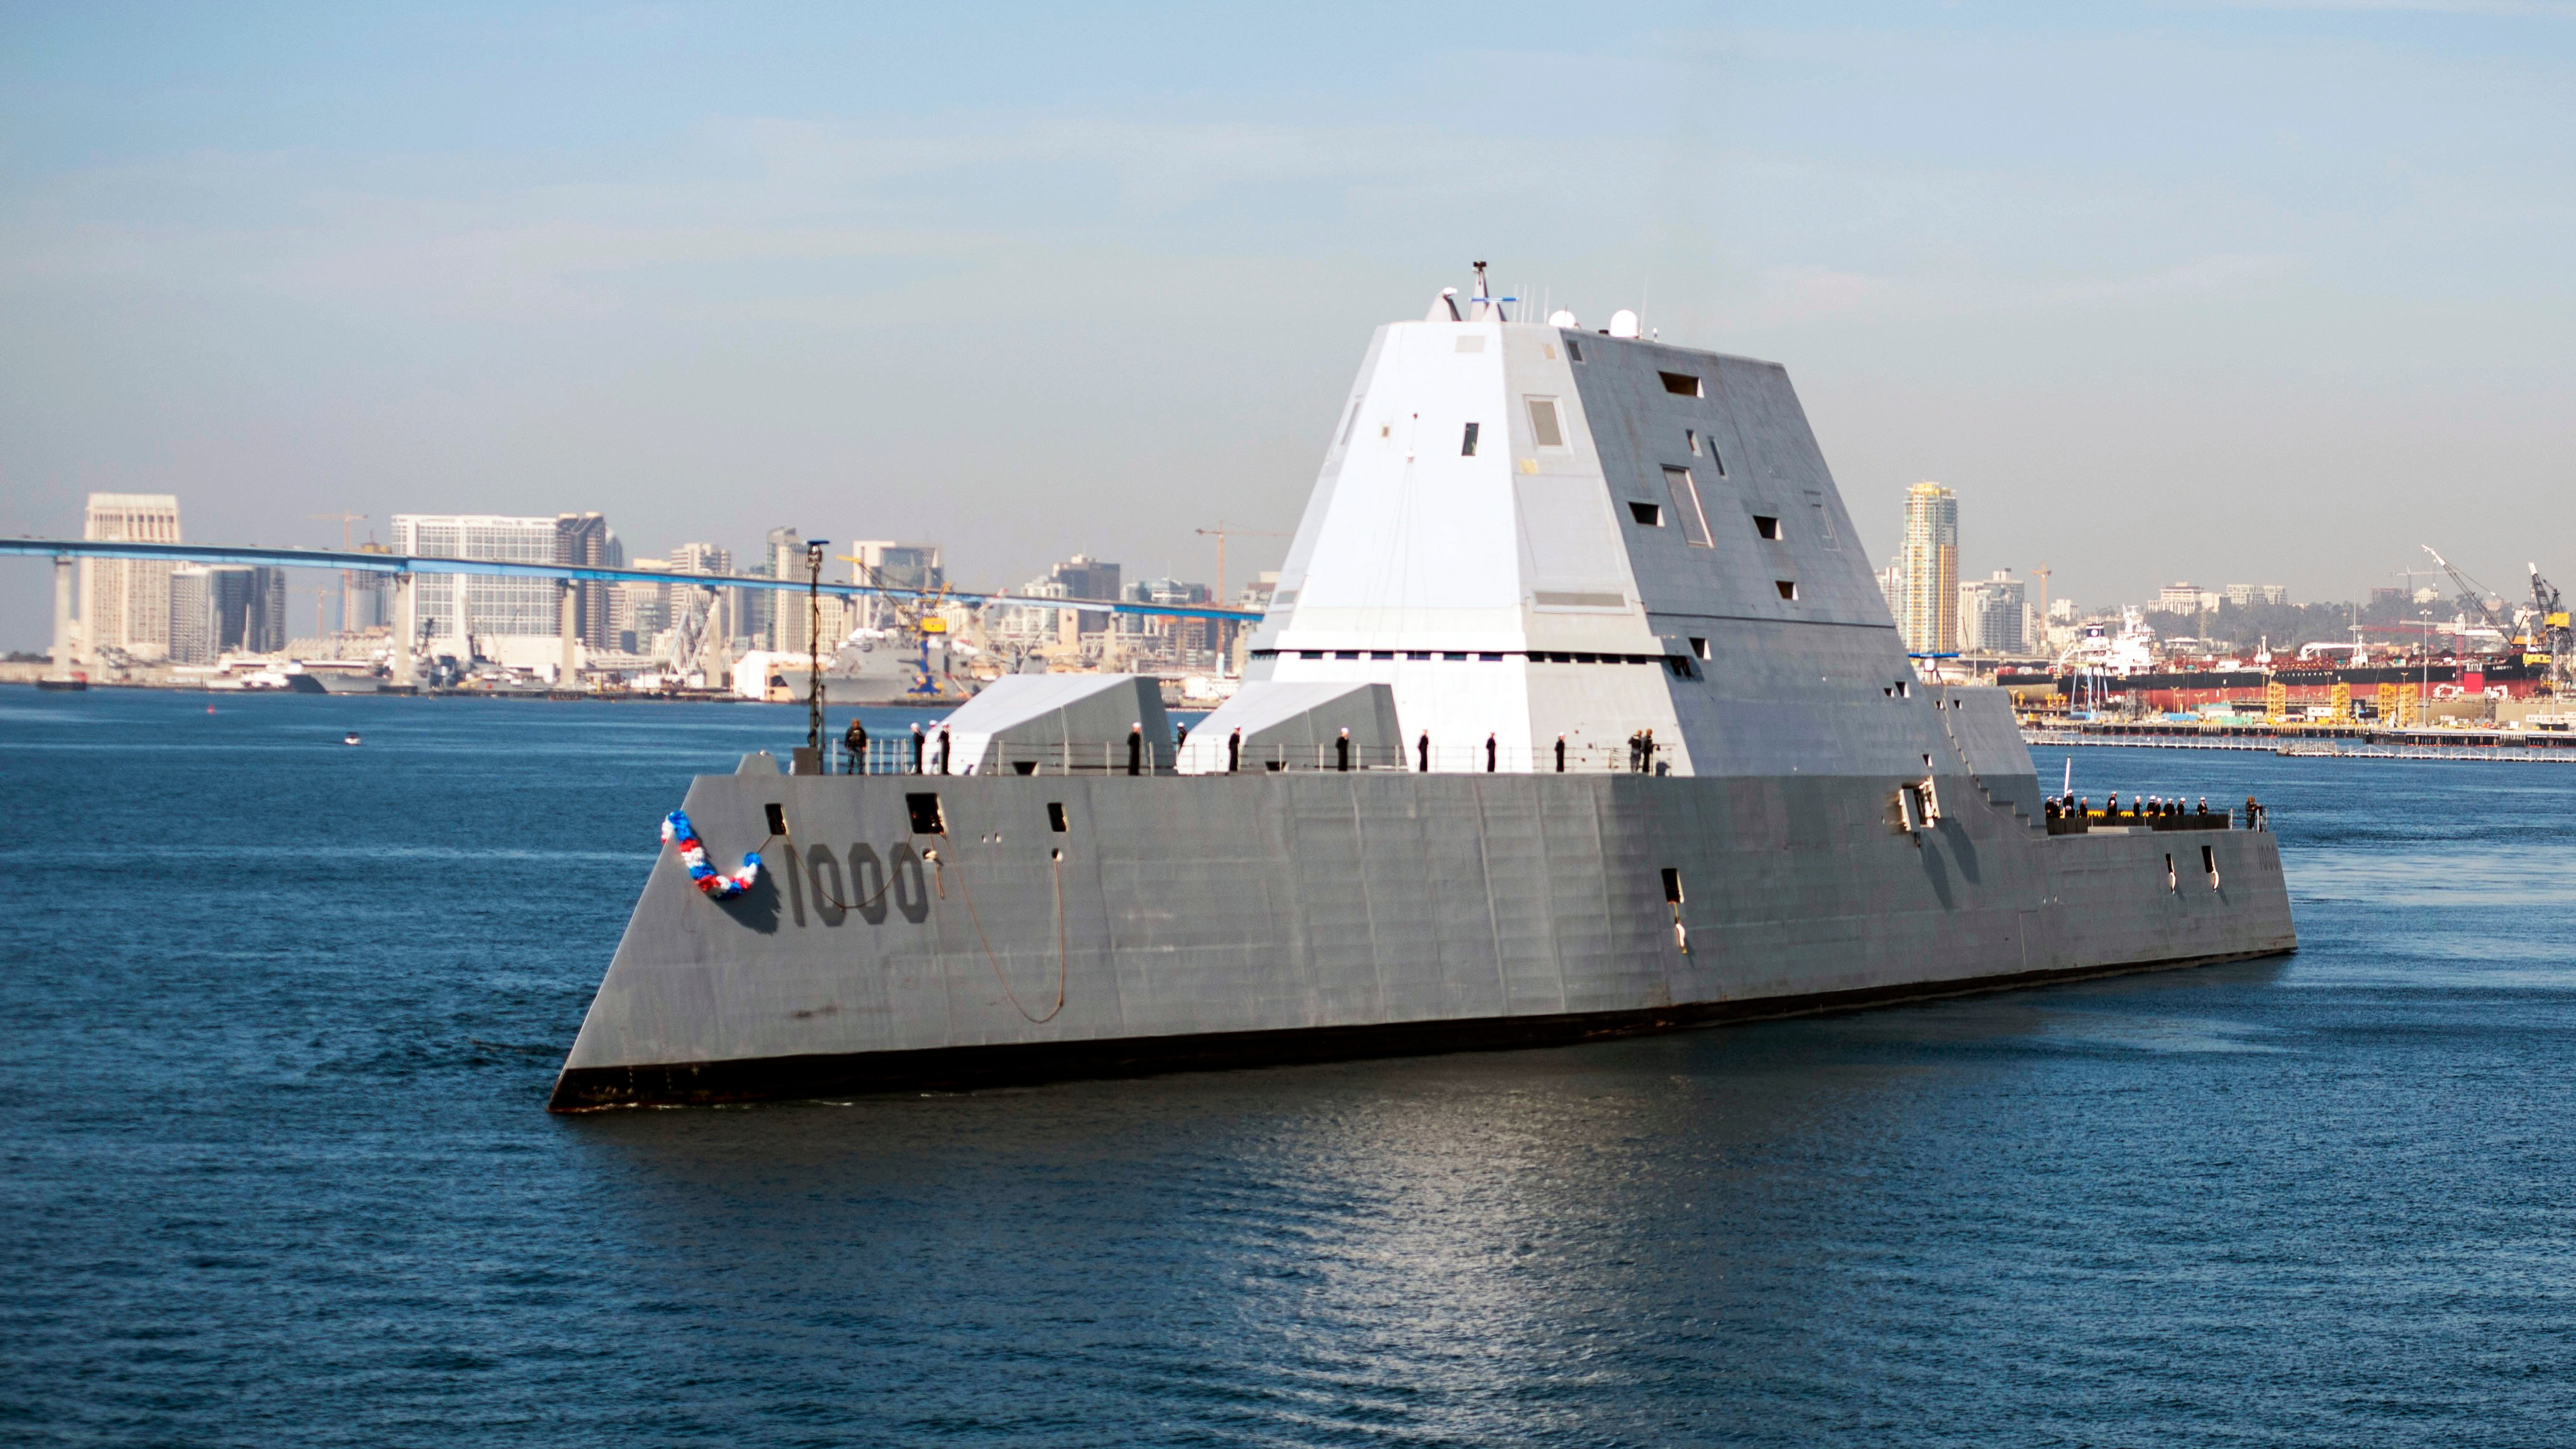 The guided-missile destroyer USS Zumwalt (DDG 1000) arrives at its new homeport in San Diego on Dec. 8, 2016. US Navy photo.